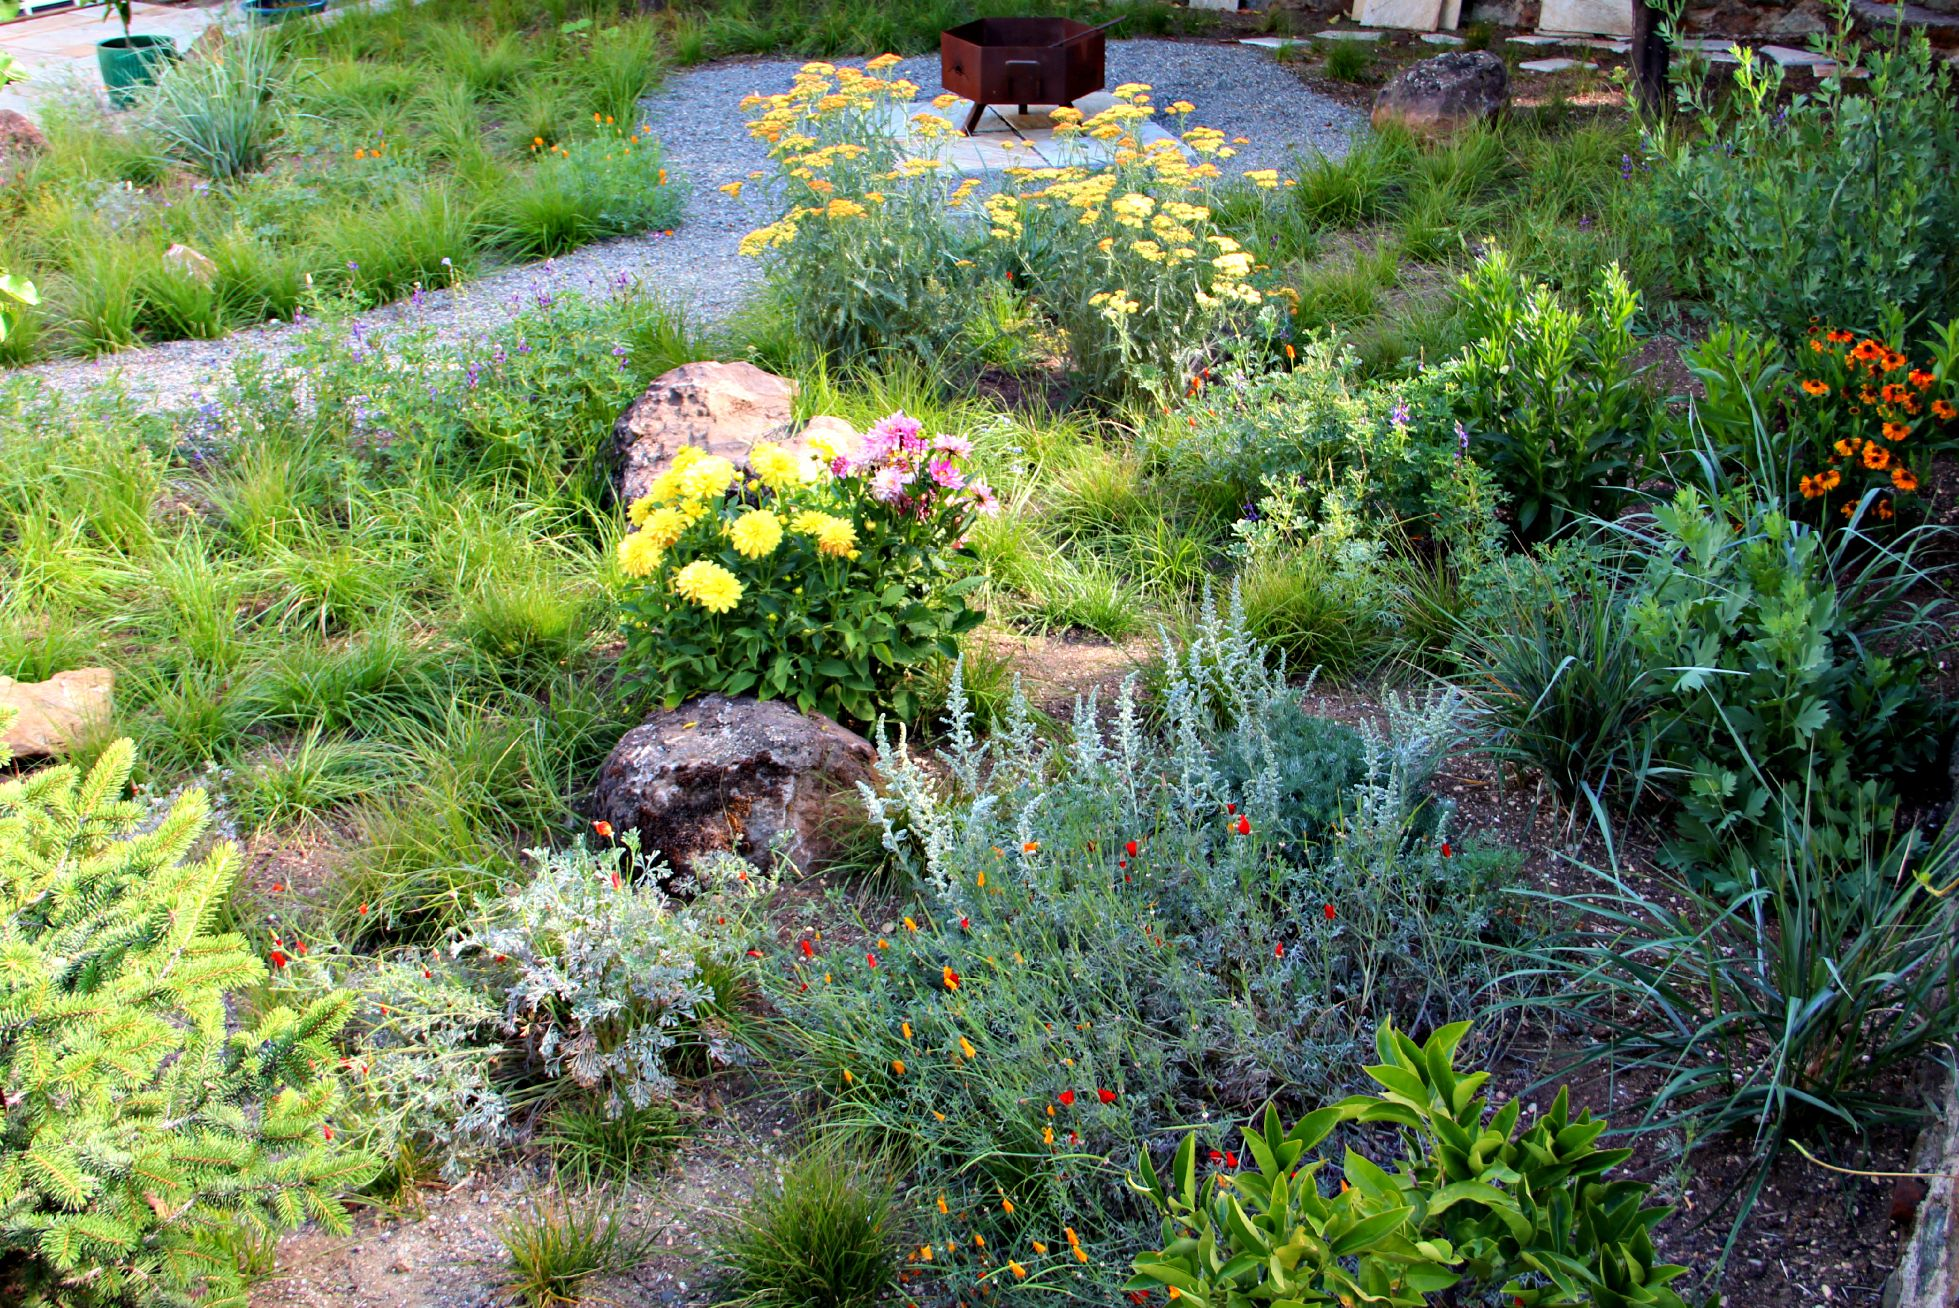 California Native Plants For The Garden Gardening With Natives